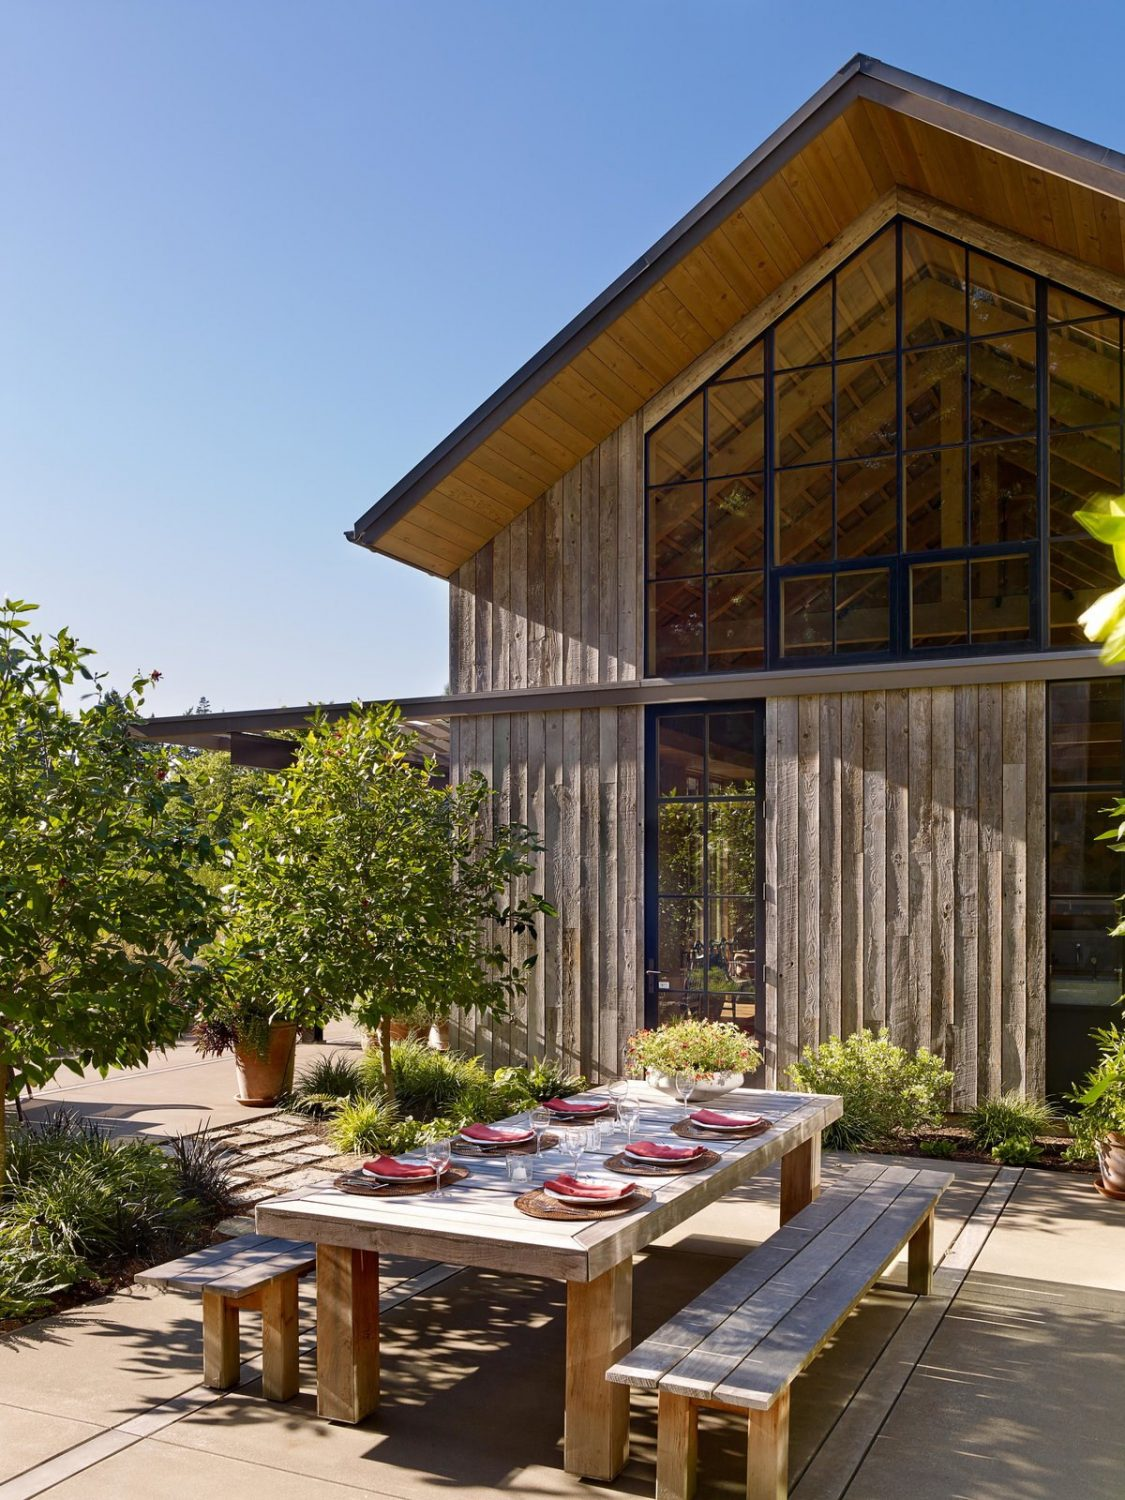 Country Garden House by Olson Kundig